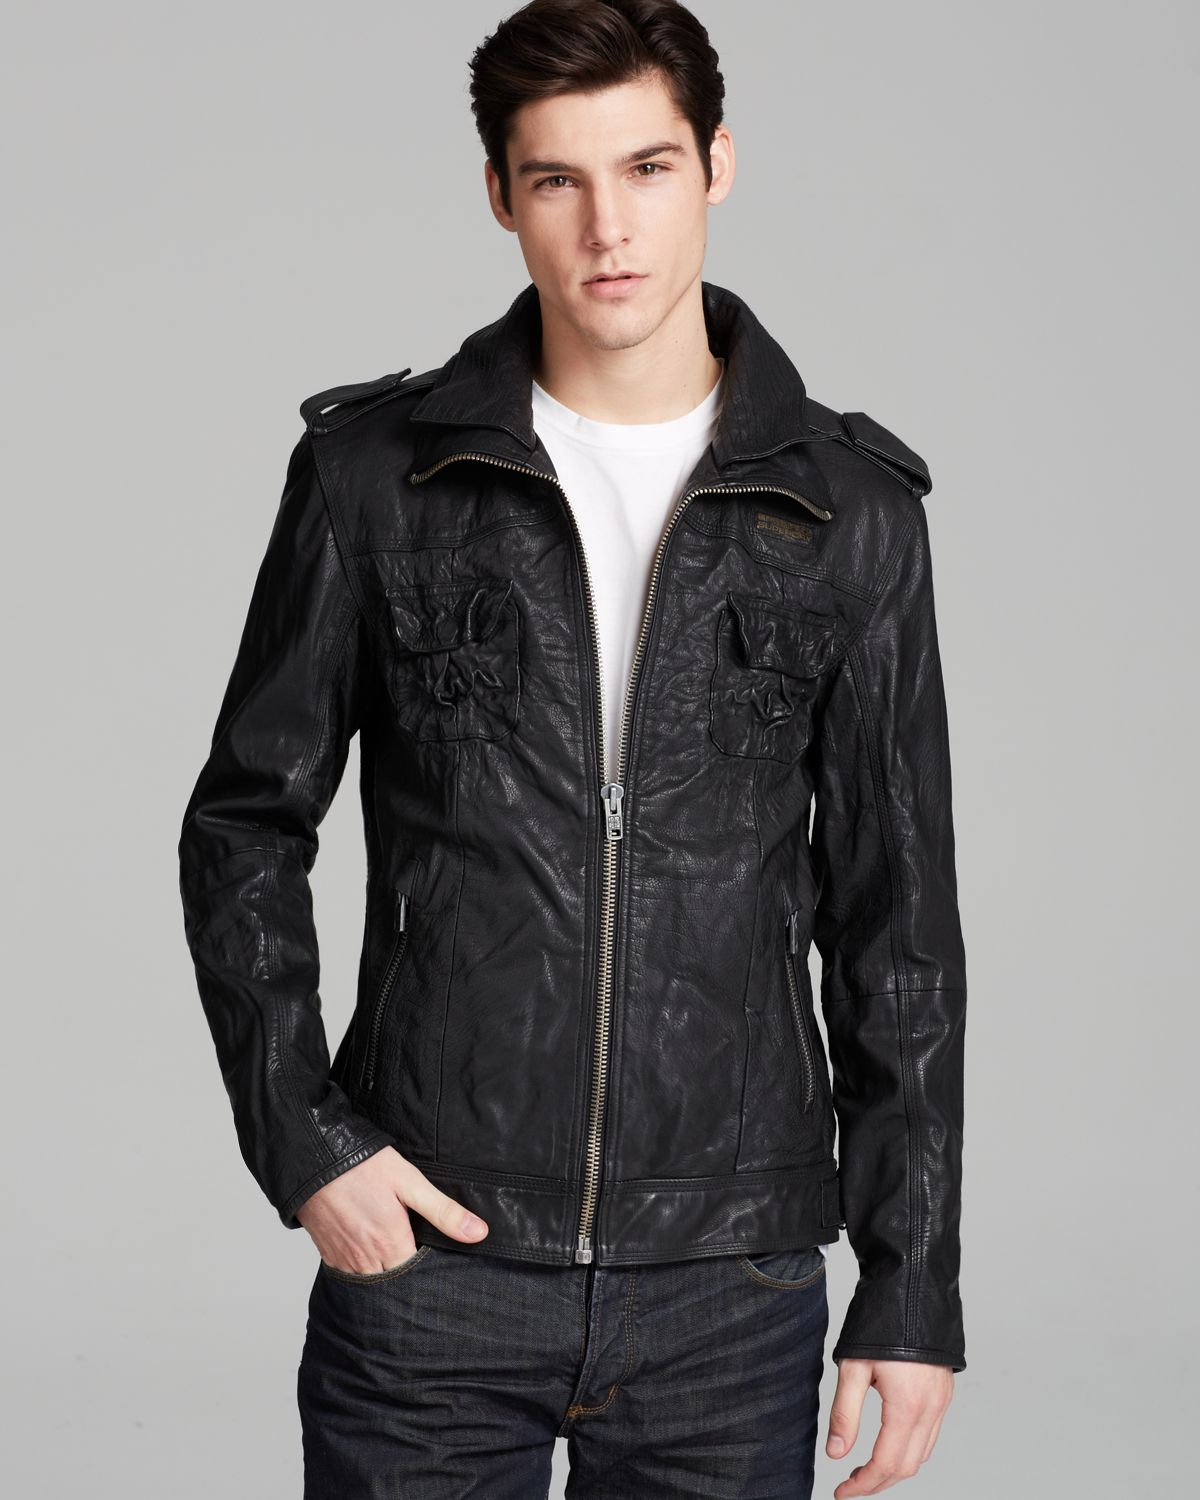 d7eb6d70d9b1 Superdry Ryan Leather Jacket in Black for Men - Lyst